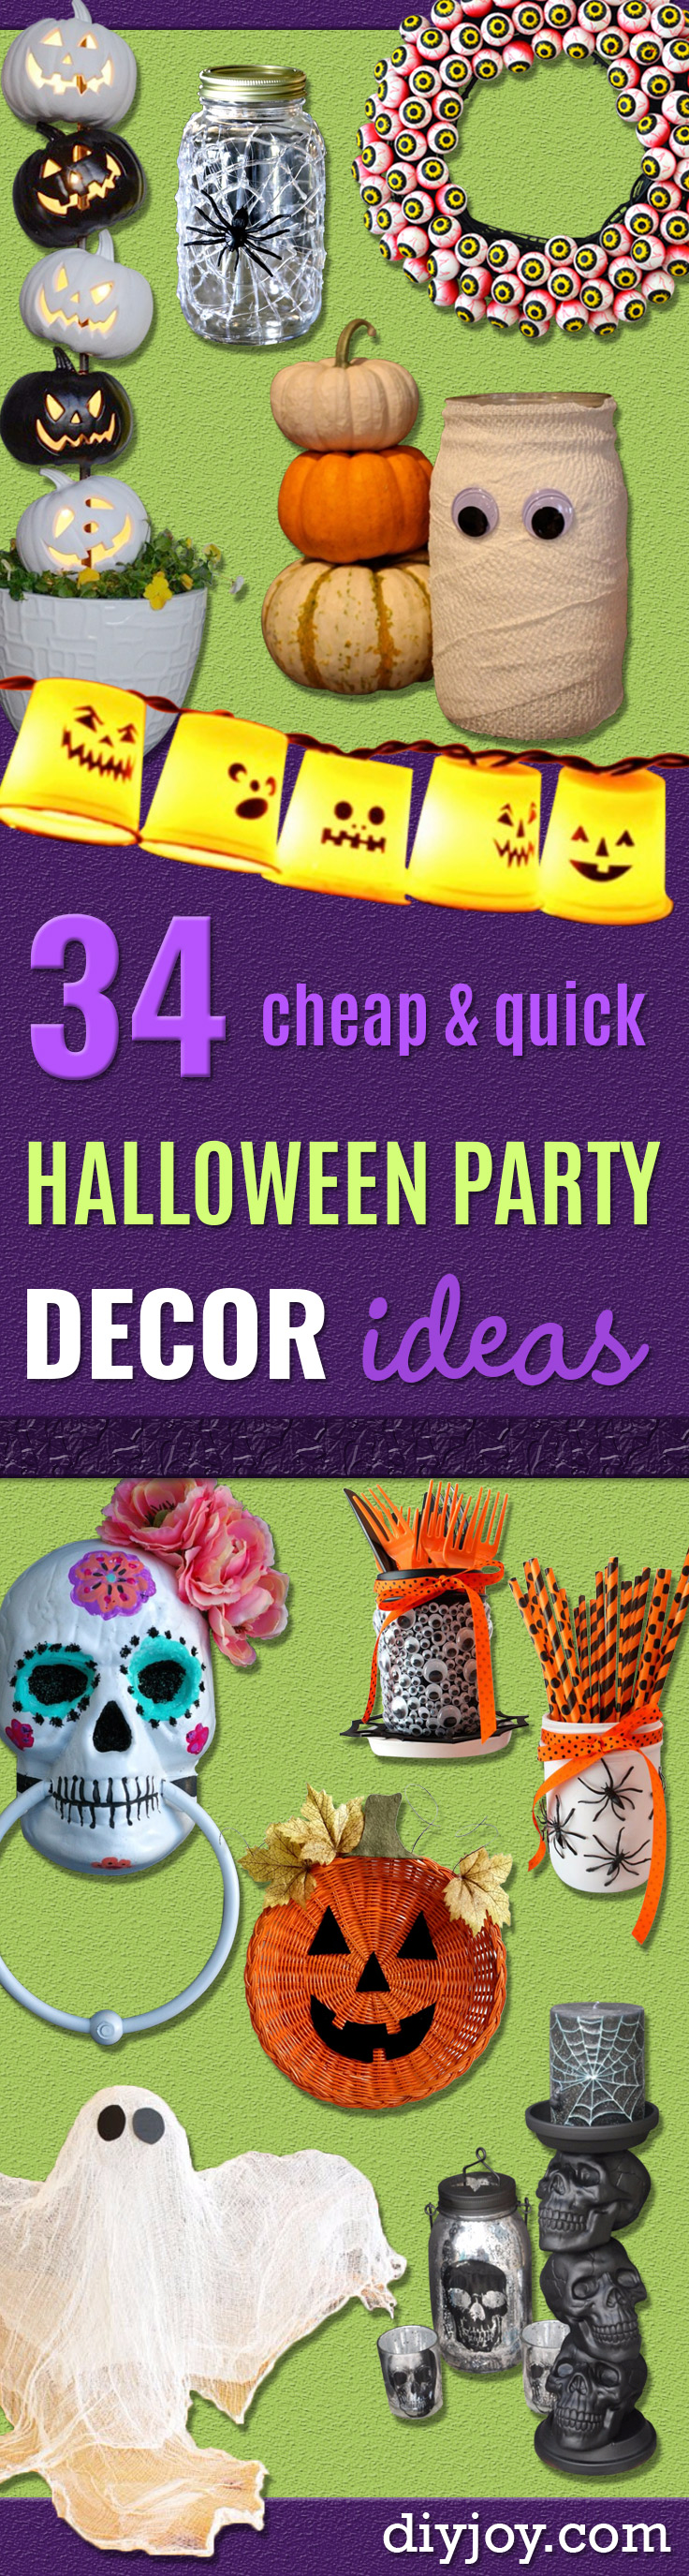 34 Cheap and Quick Halloween Party Decor Ideas - DIY Joy